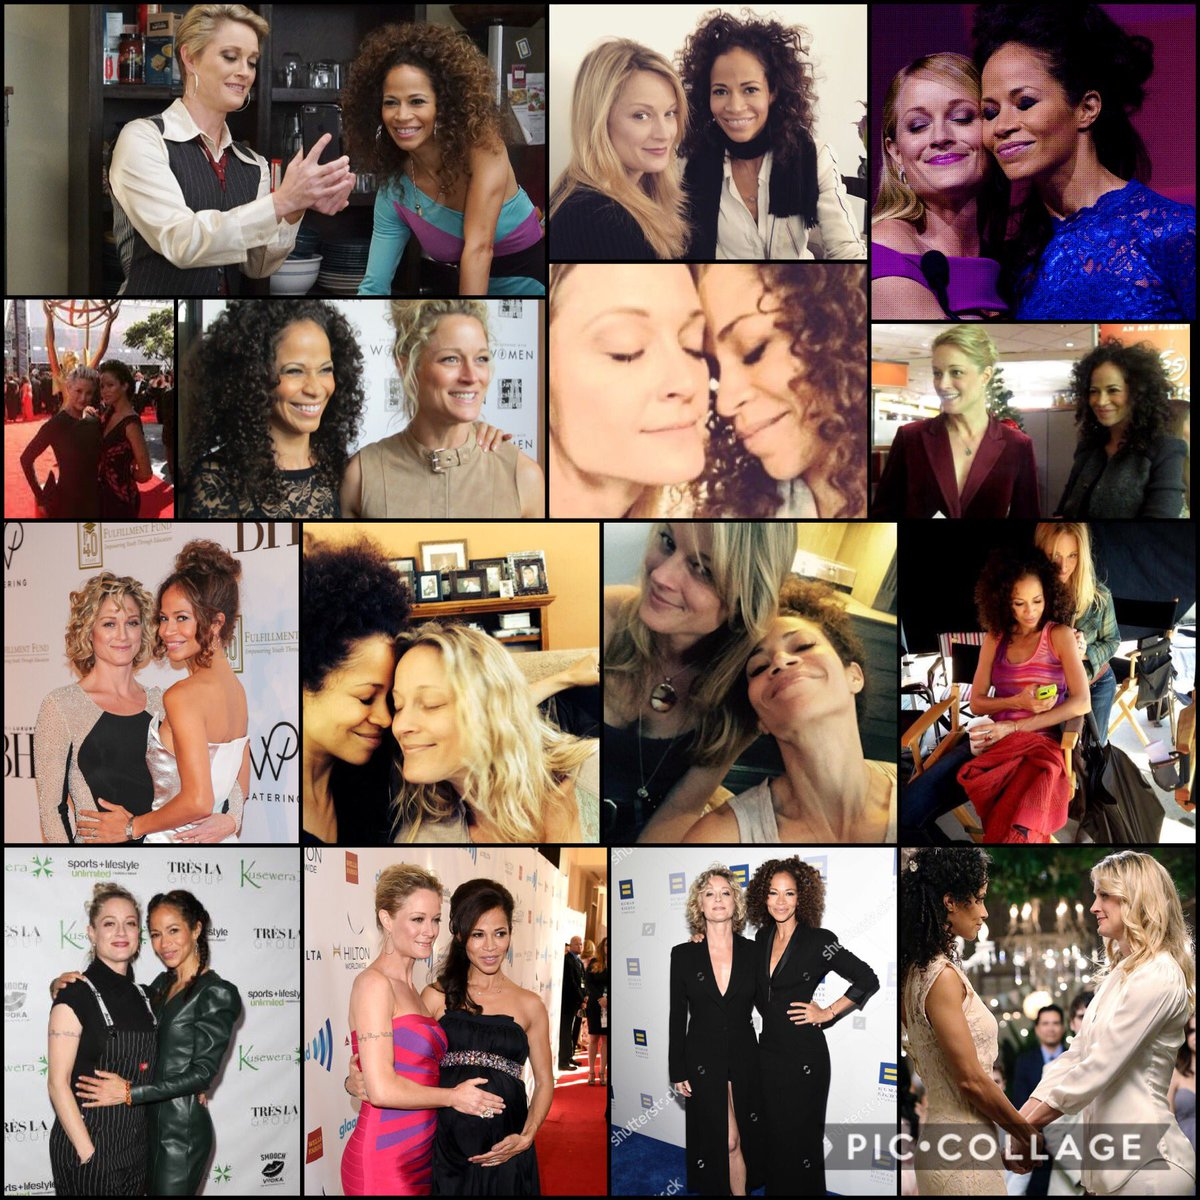 Wishing all the moms a Happy Mother's Day especially the moms from The Fosters - #MothersDay #MothersDay2020 #TheFosters #RememberTheMotherShip #StefAndLena #SherriSaum #TeriPolo #AdamsFosterMamaSpinoff<br>http://pic.twitter.com/odQdSURO9V